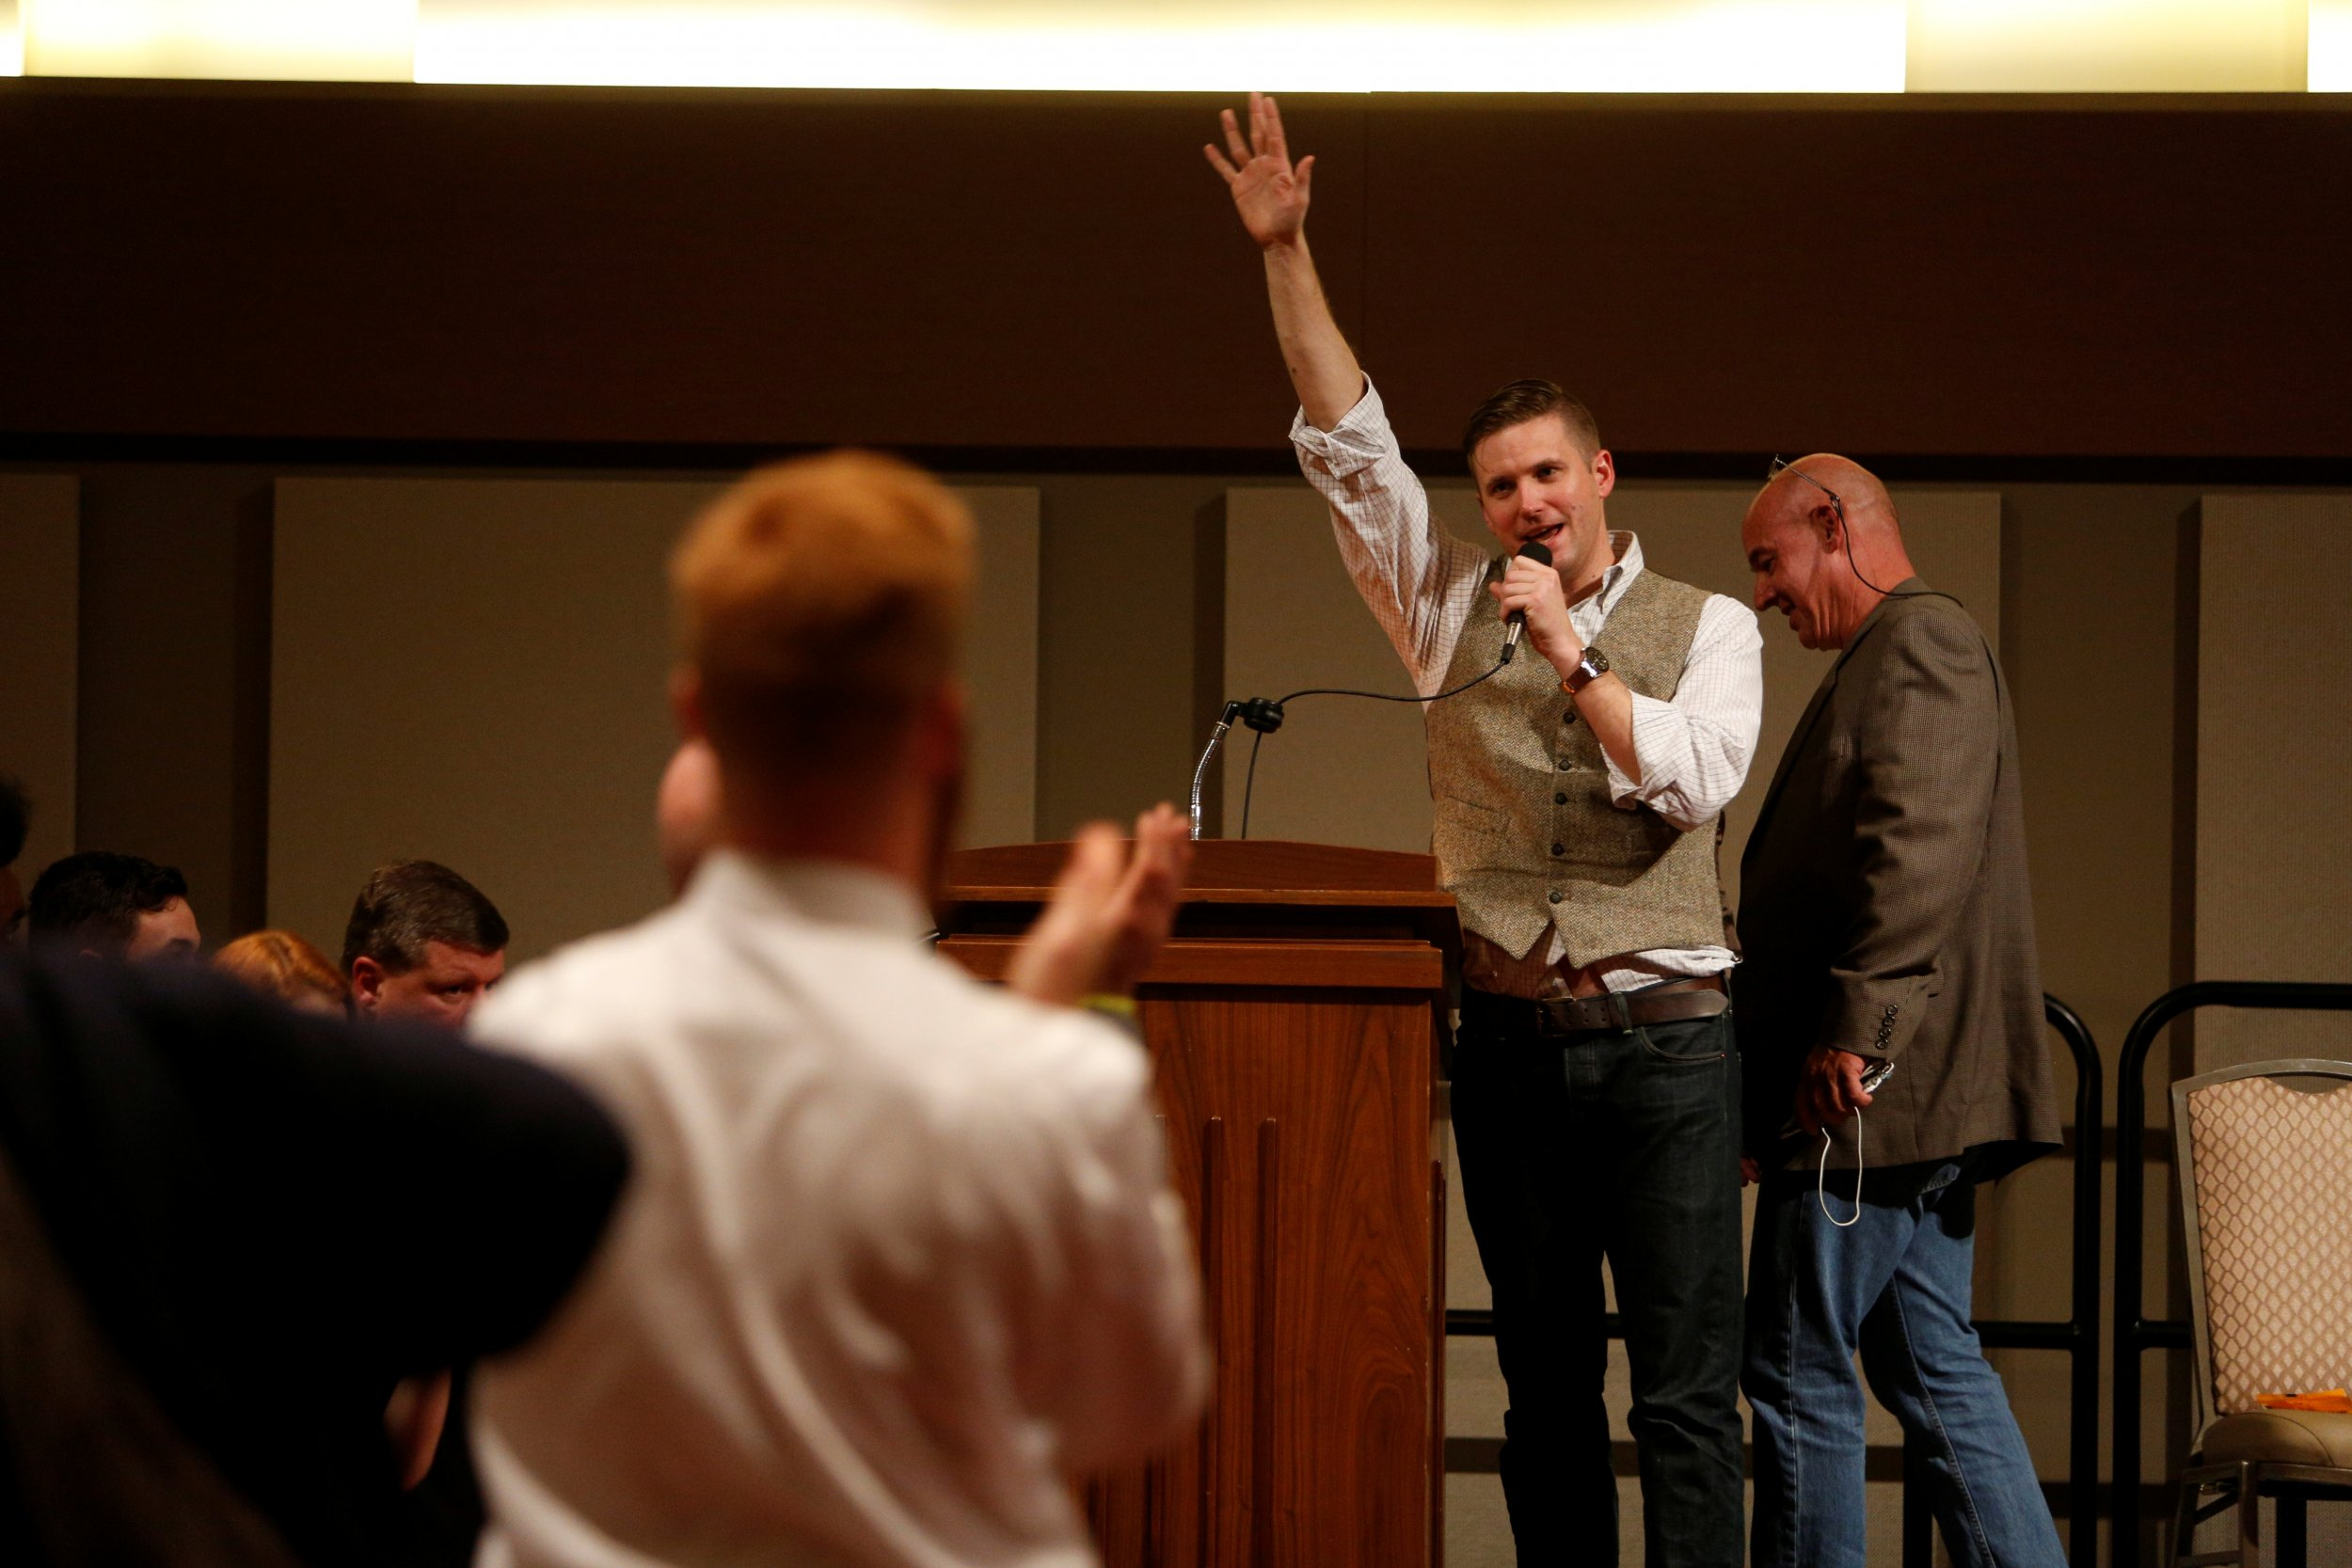 White nationalist leader Richard Spencer of the National Policy